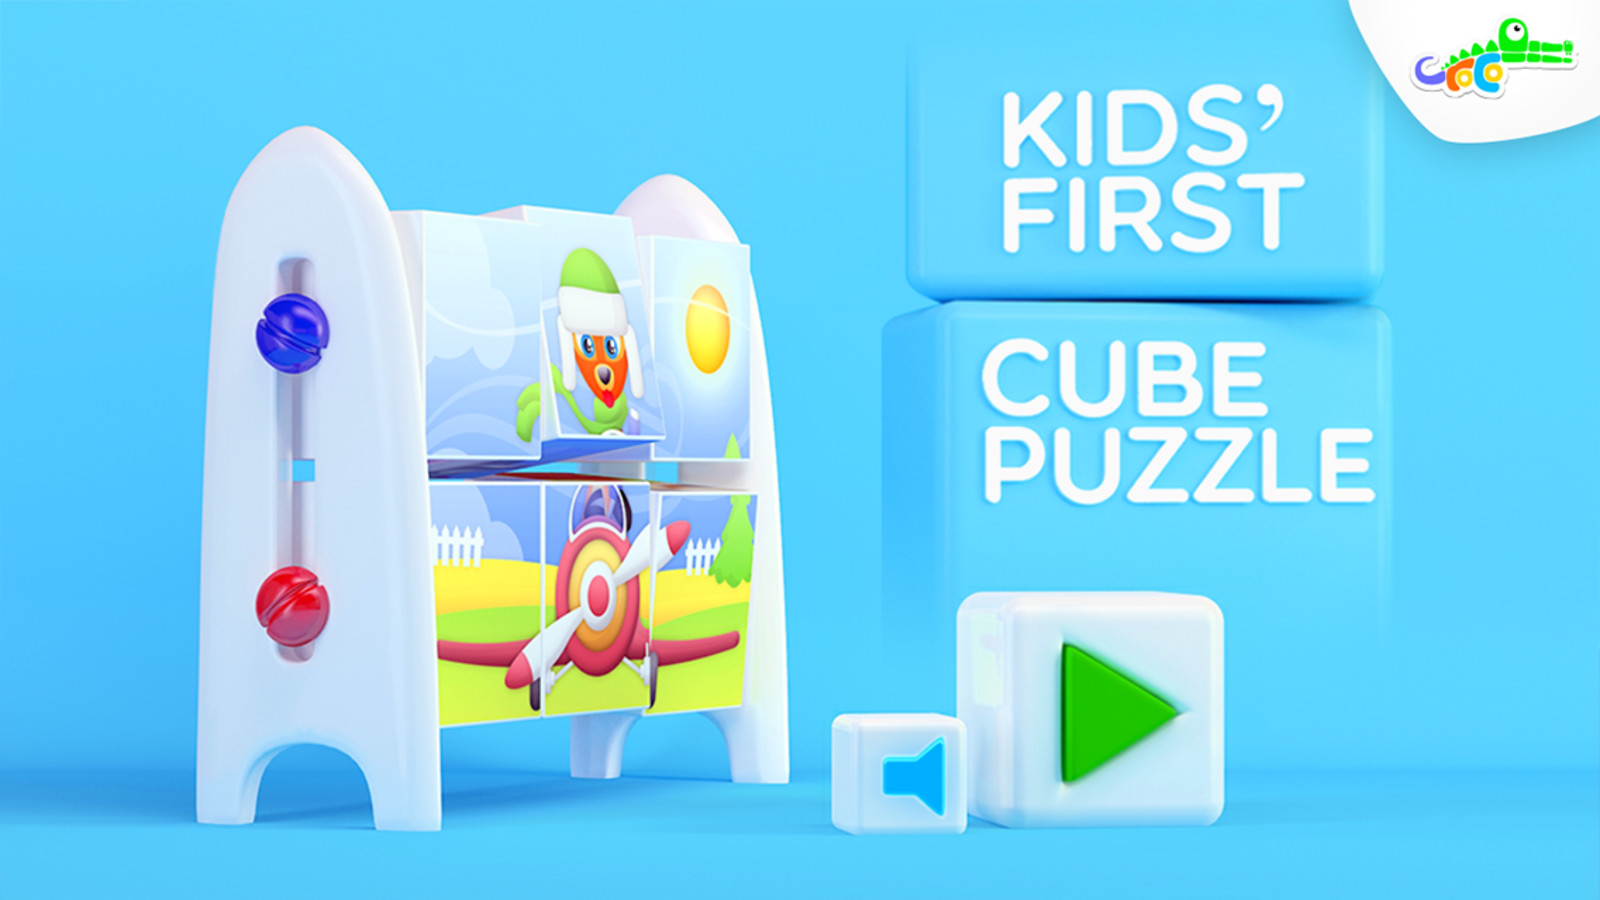 Kids' First Cube Puzzle